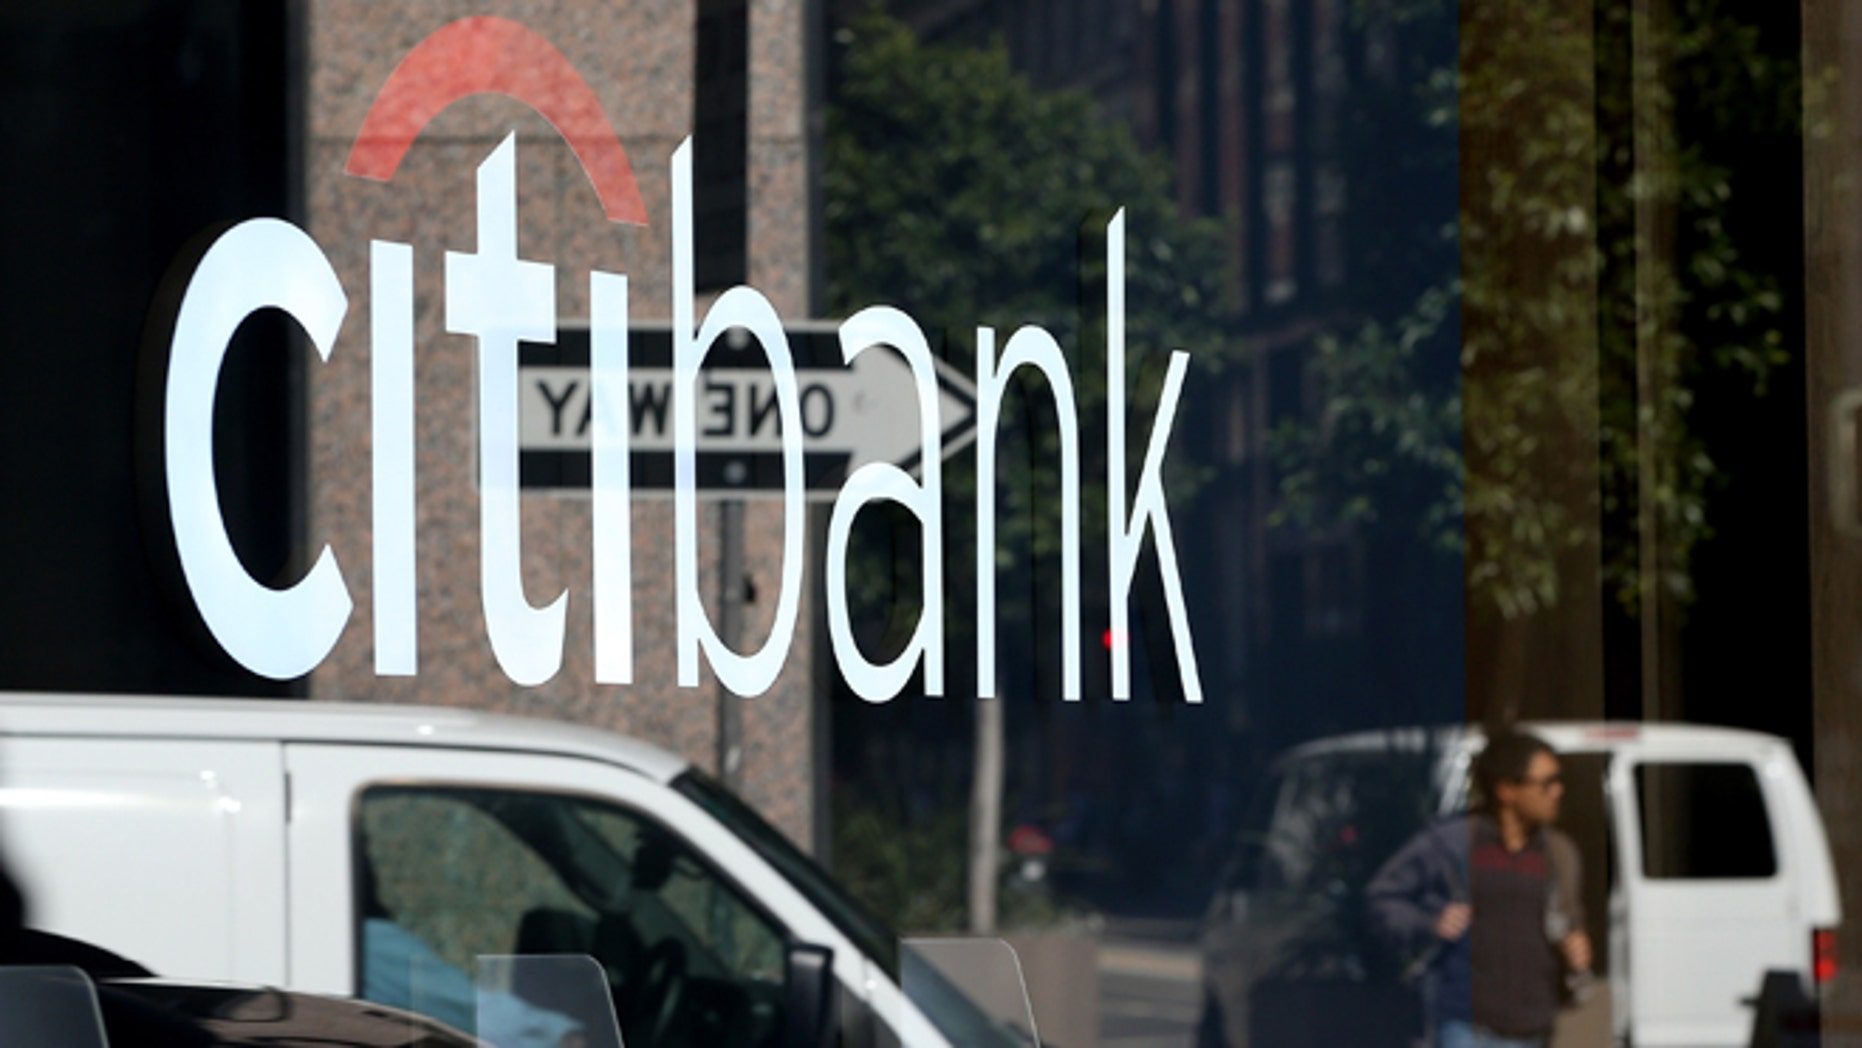 SAN FRANCISCO, CA - JULY 14:  A person is reflected in the window of a Citibank branch office on July 14, 2014 in San Francisco, California.  After several months of negotiations with the U.S. Department of Justice, Citigroup has agreed to pay nearly $7 billion in fines for misleading investors about the quality of mortgage-backed securities prior to the 2008 financial crisis. As part of the settlement Citigroup will pay $2.5 billion in consumer relief.  (Photo by Justin Sullivan/Getty Images)